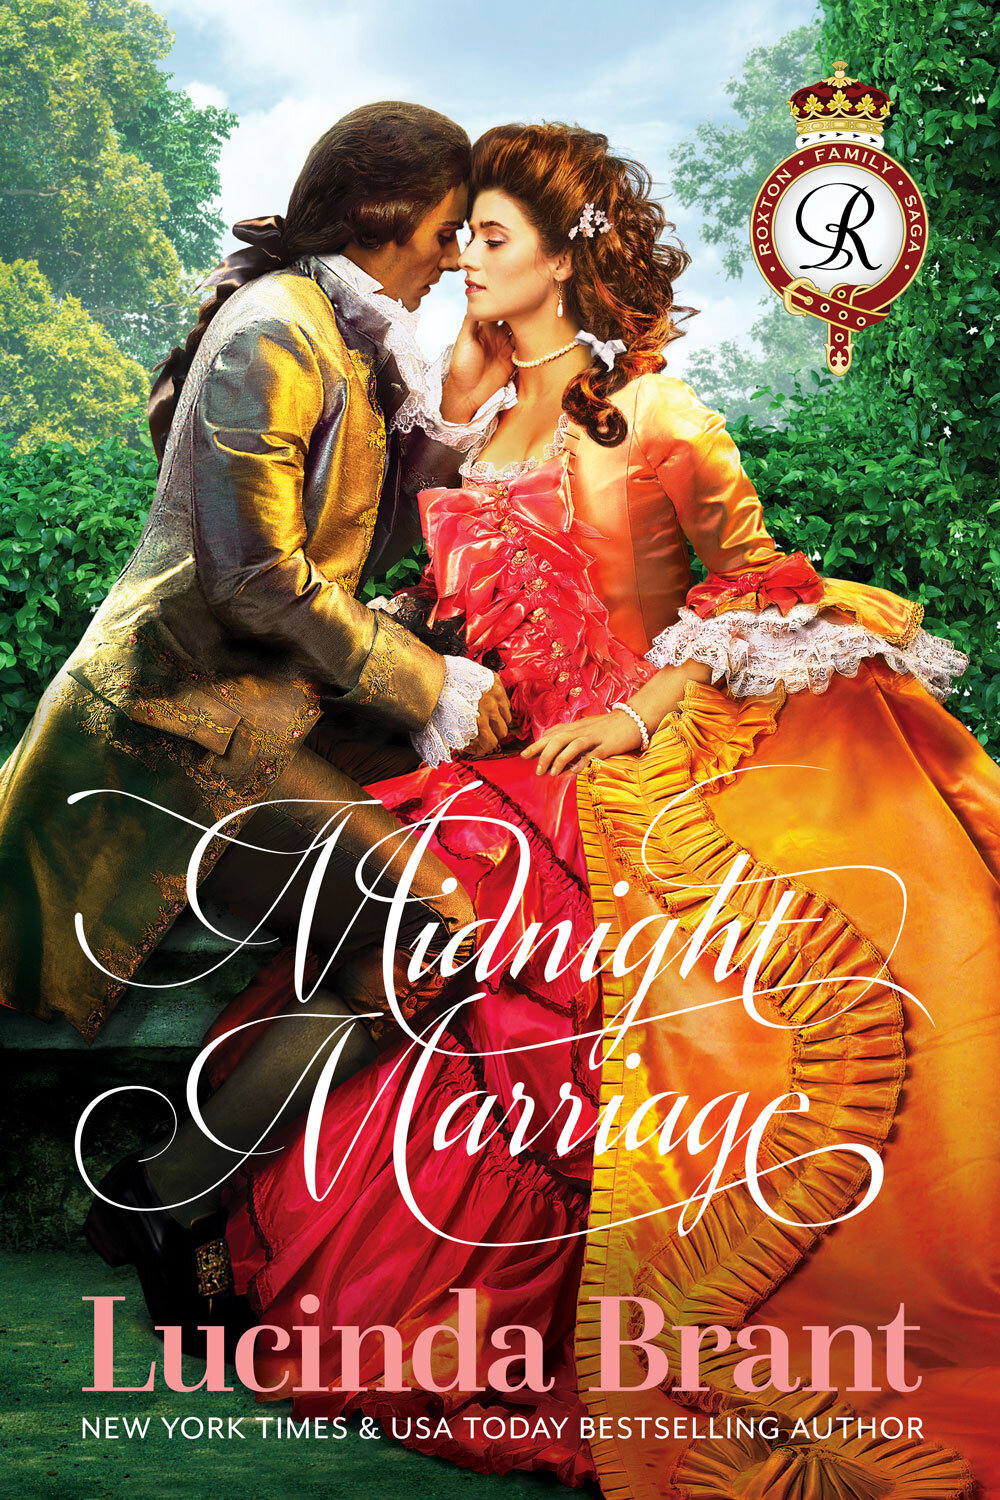 Midnight Marriage—A Georgian Historical Romance by Lucinda Brant